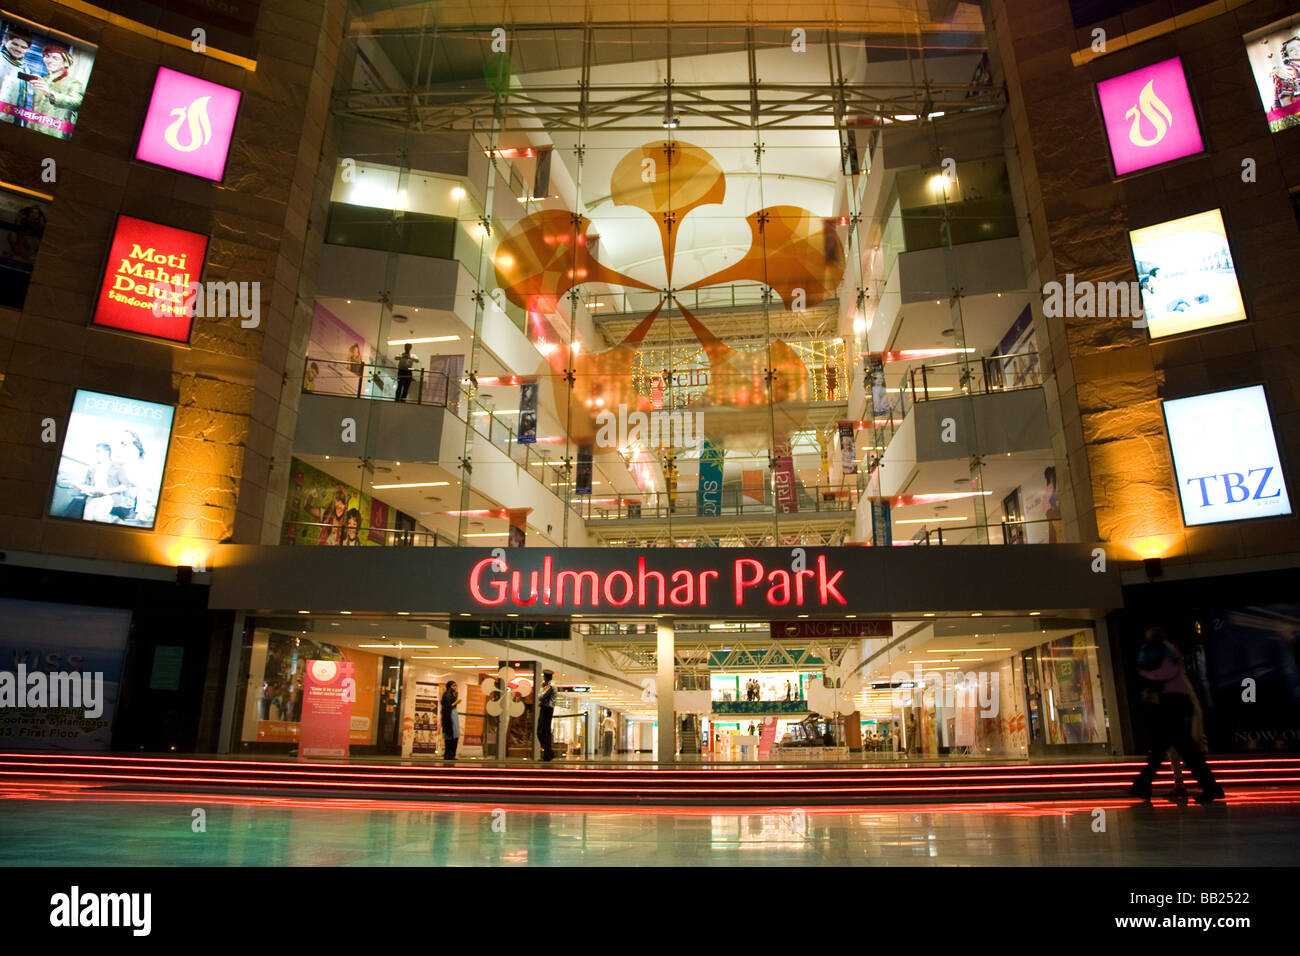 The Gulmohar Park Shopping Mall in the Gujarati city of Ahmedabad, India. - Stock Image